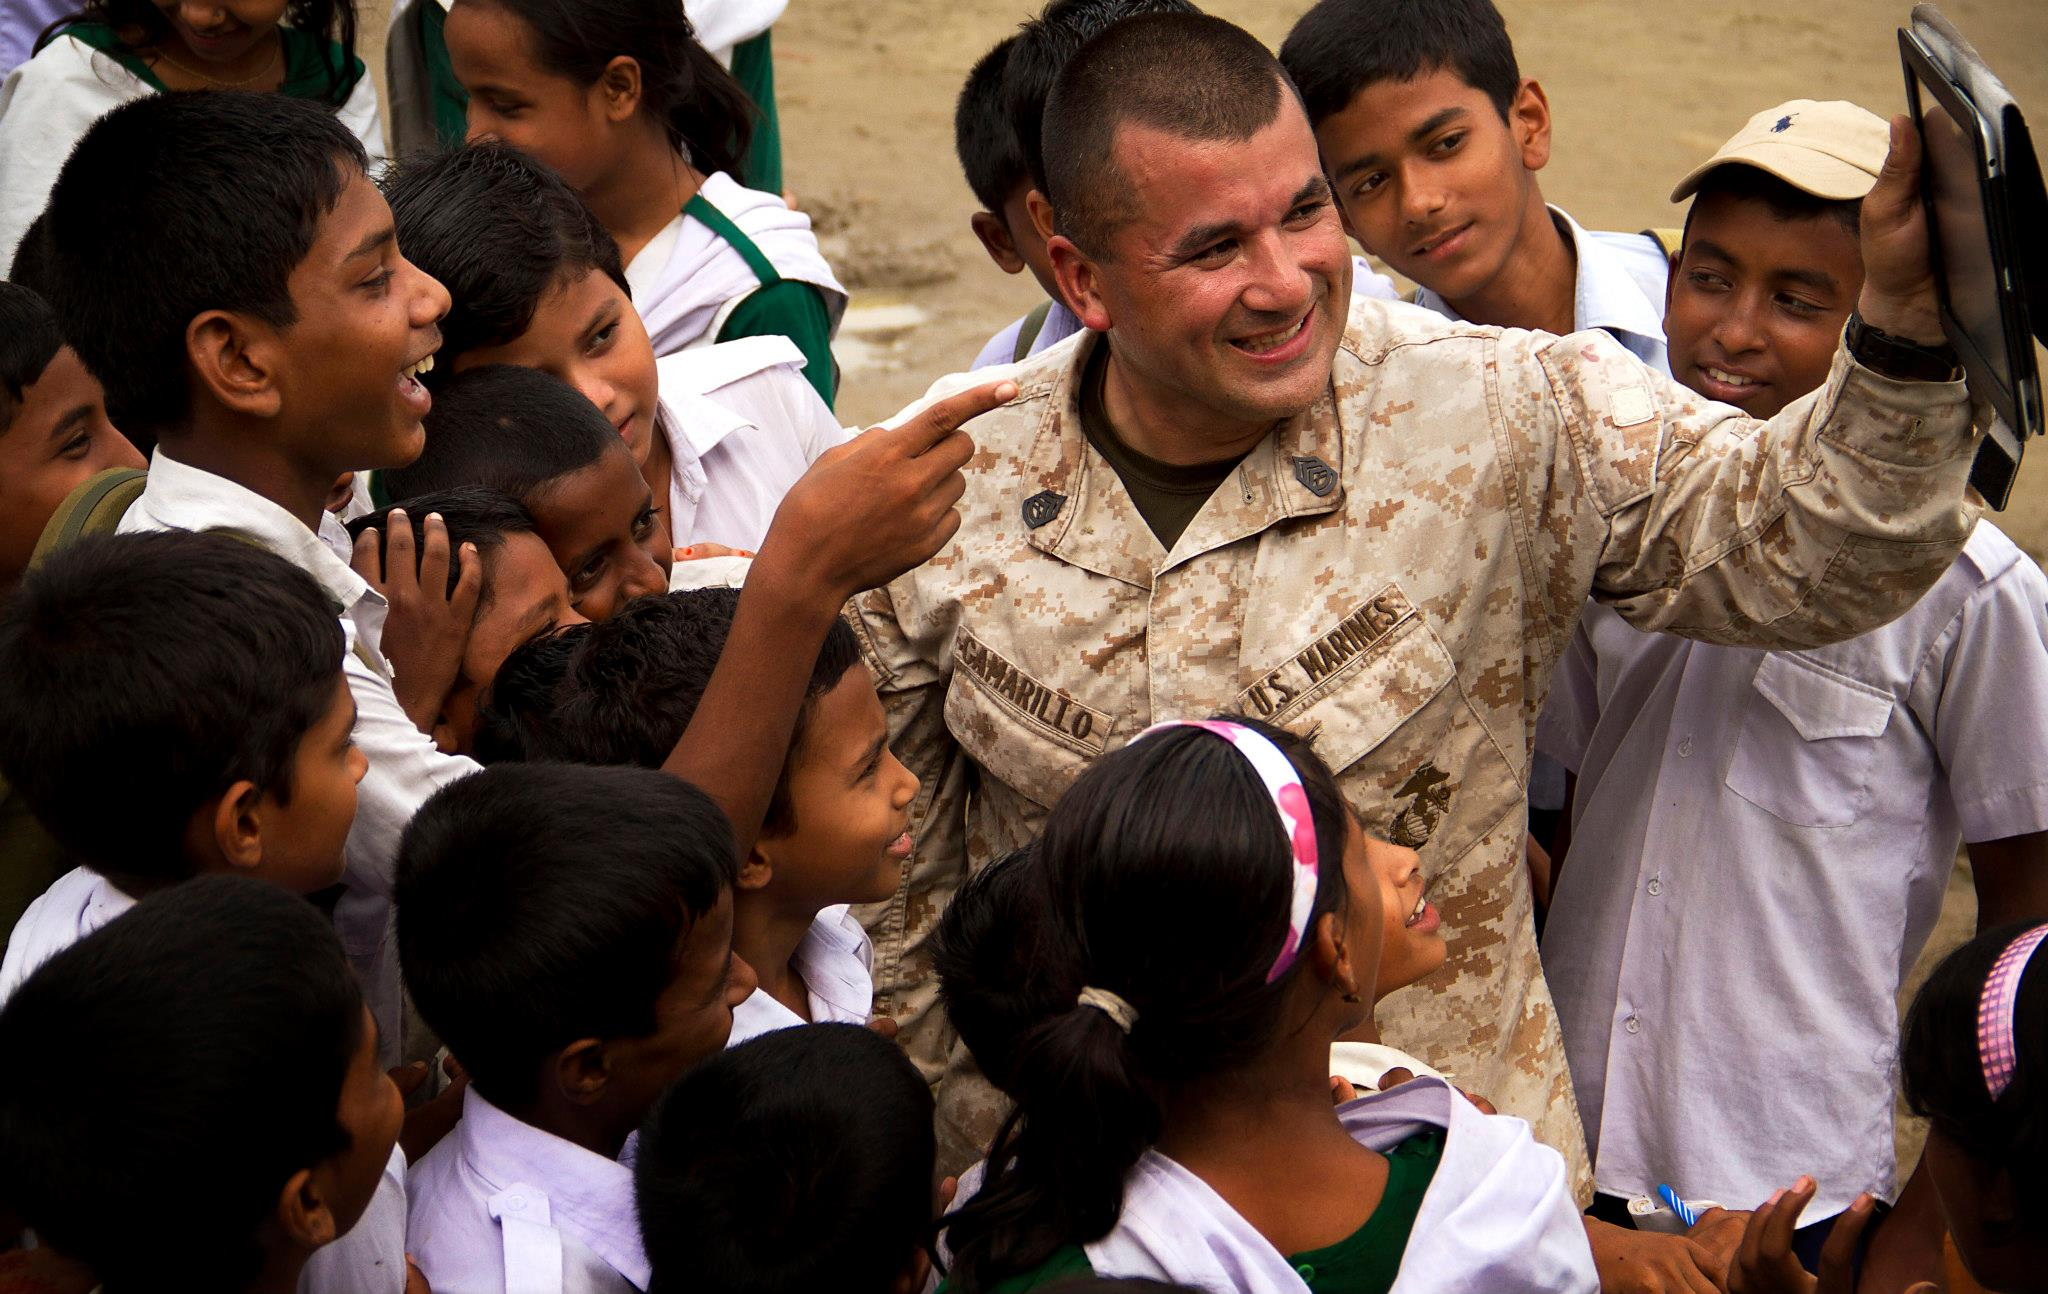 Guns and Military Marine Wing Support Squadron 171 (MWSS-171) Marine Gunnery Sgt. Burney Camarillo, safety staff non-commissioned officer in charge, shows a video of his daughter on his iPad to Bengali schoolchildren in Dhaka, Bangladesh, Sept. 3, 2012.